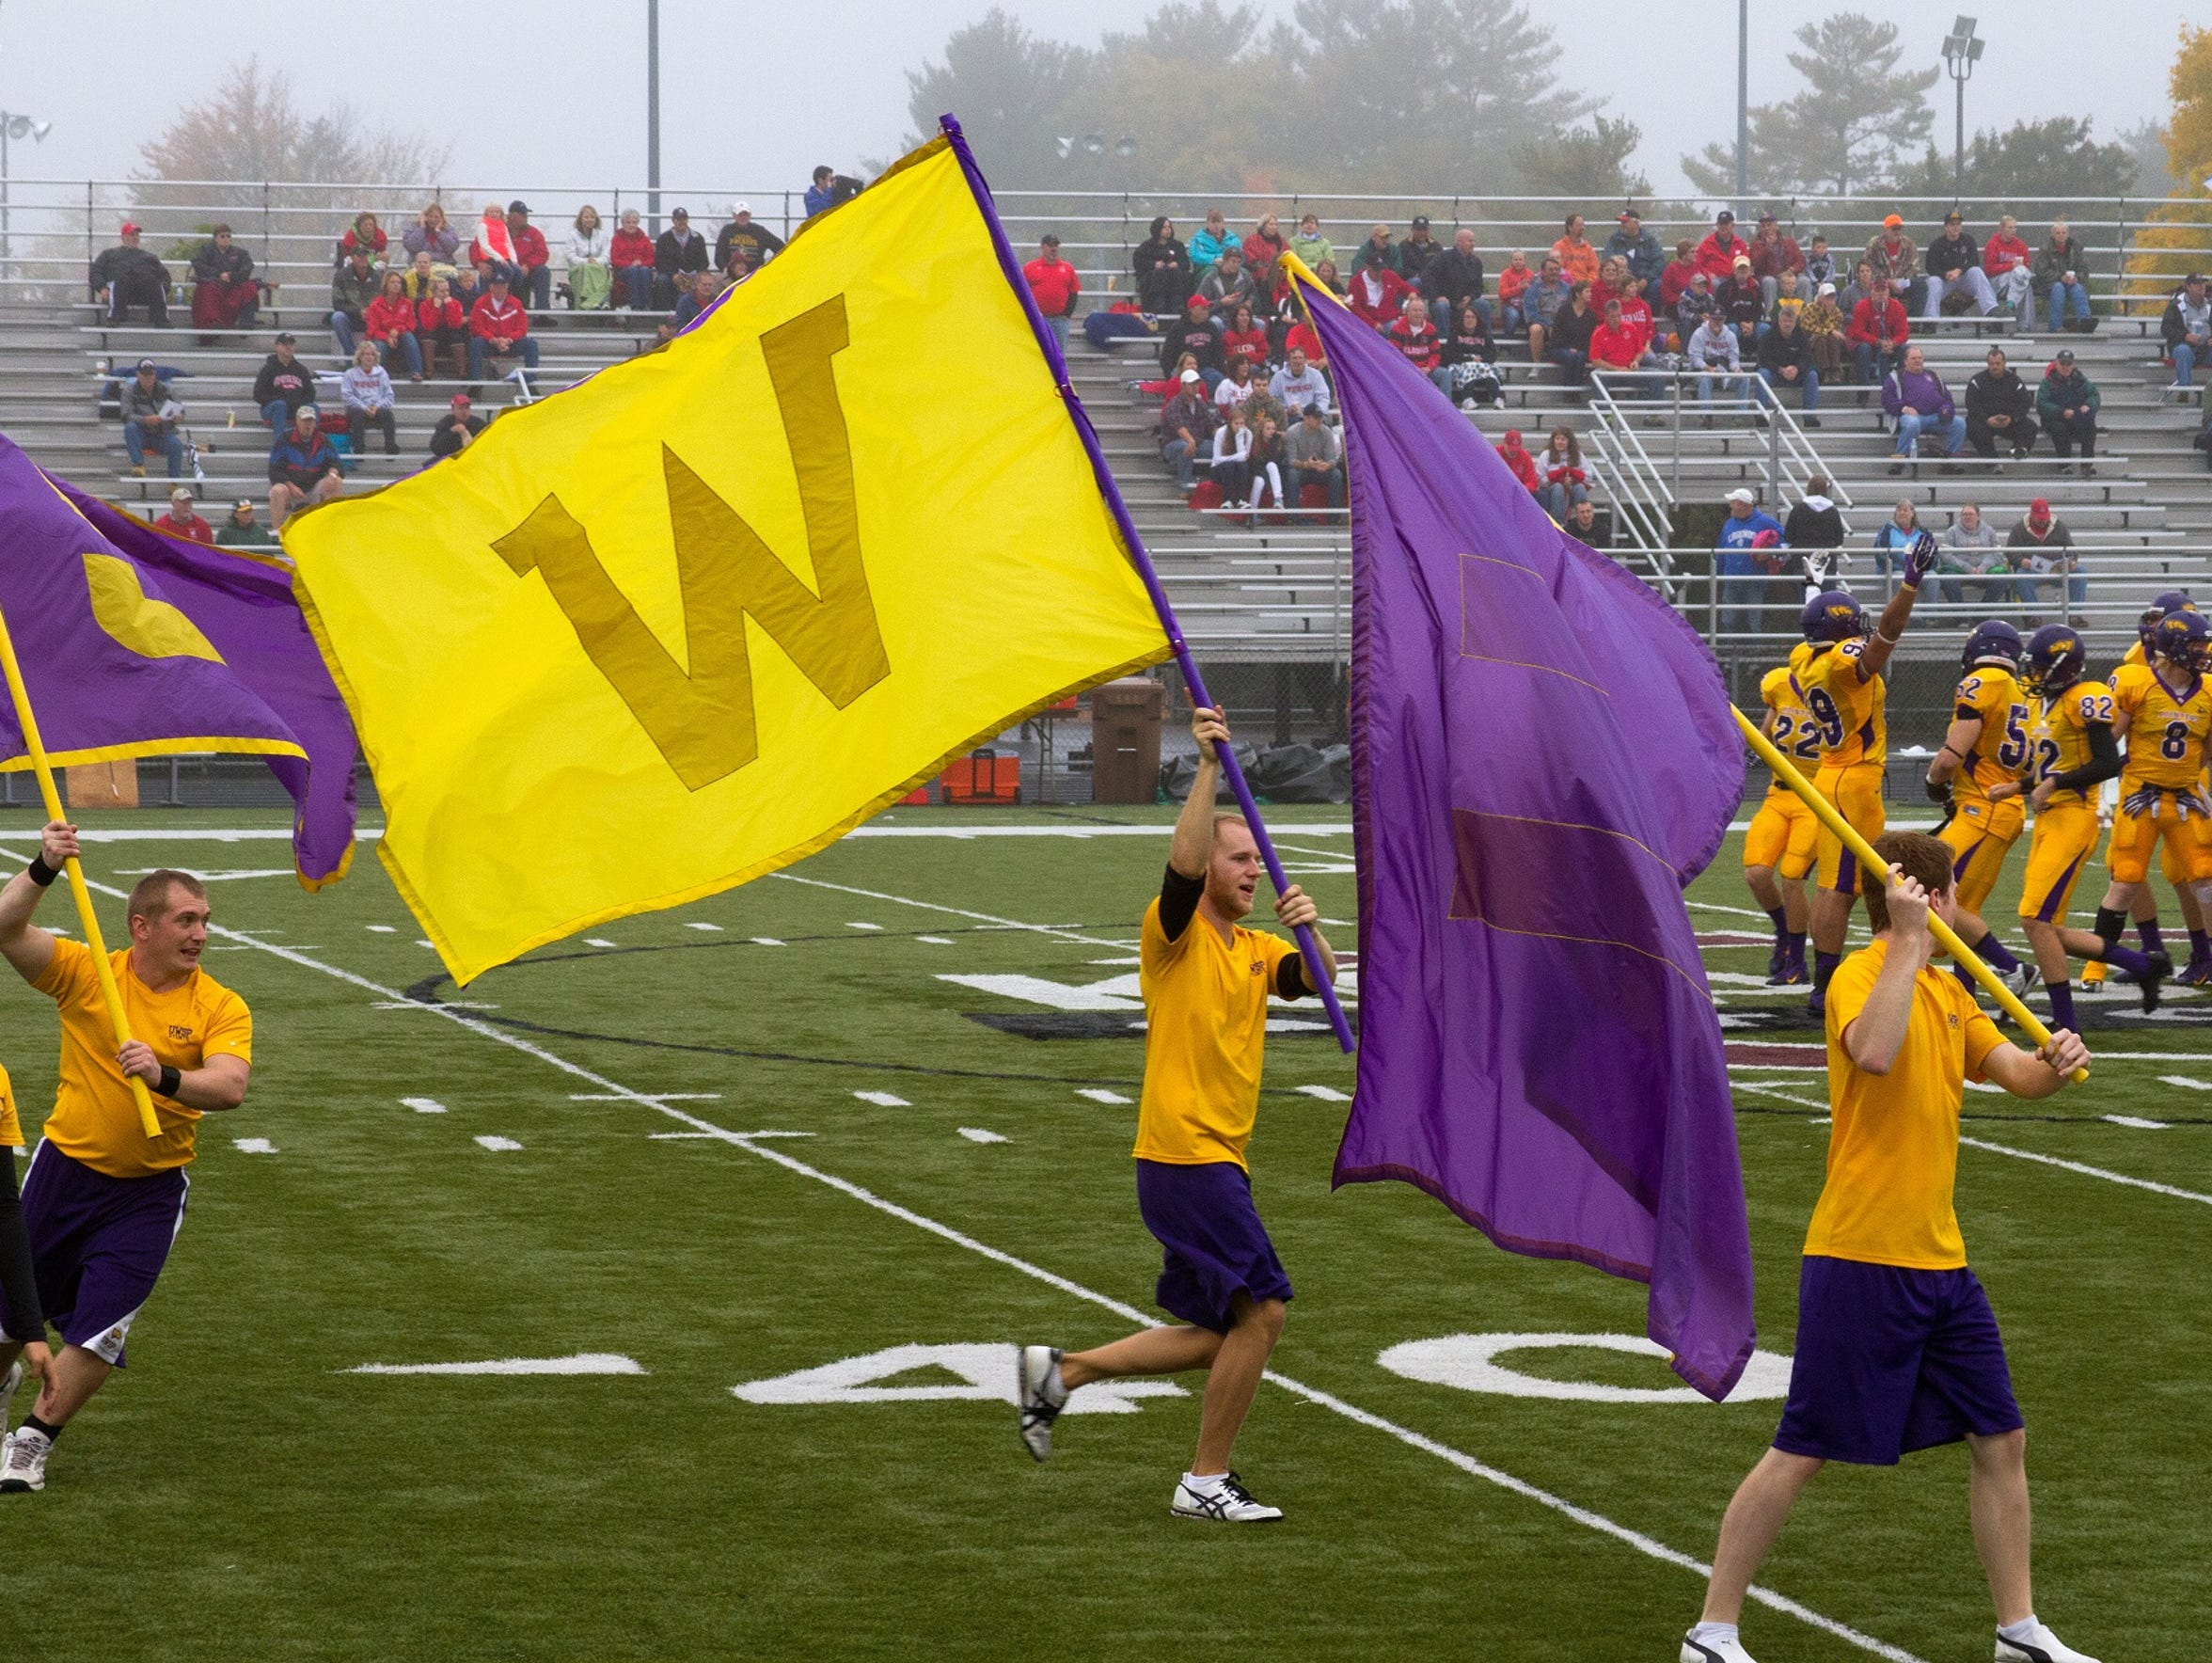 University of Wisconsin-Stevens Point's homecoming